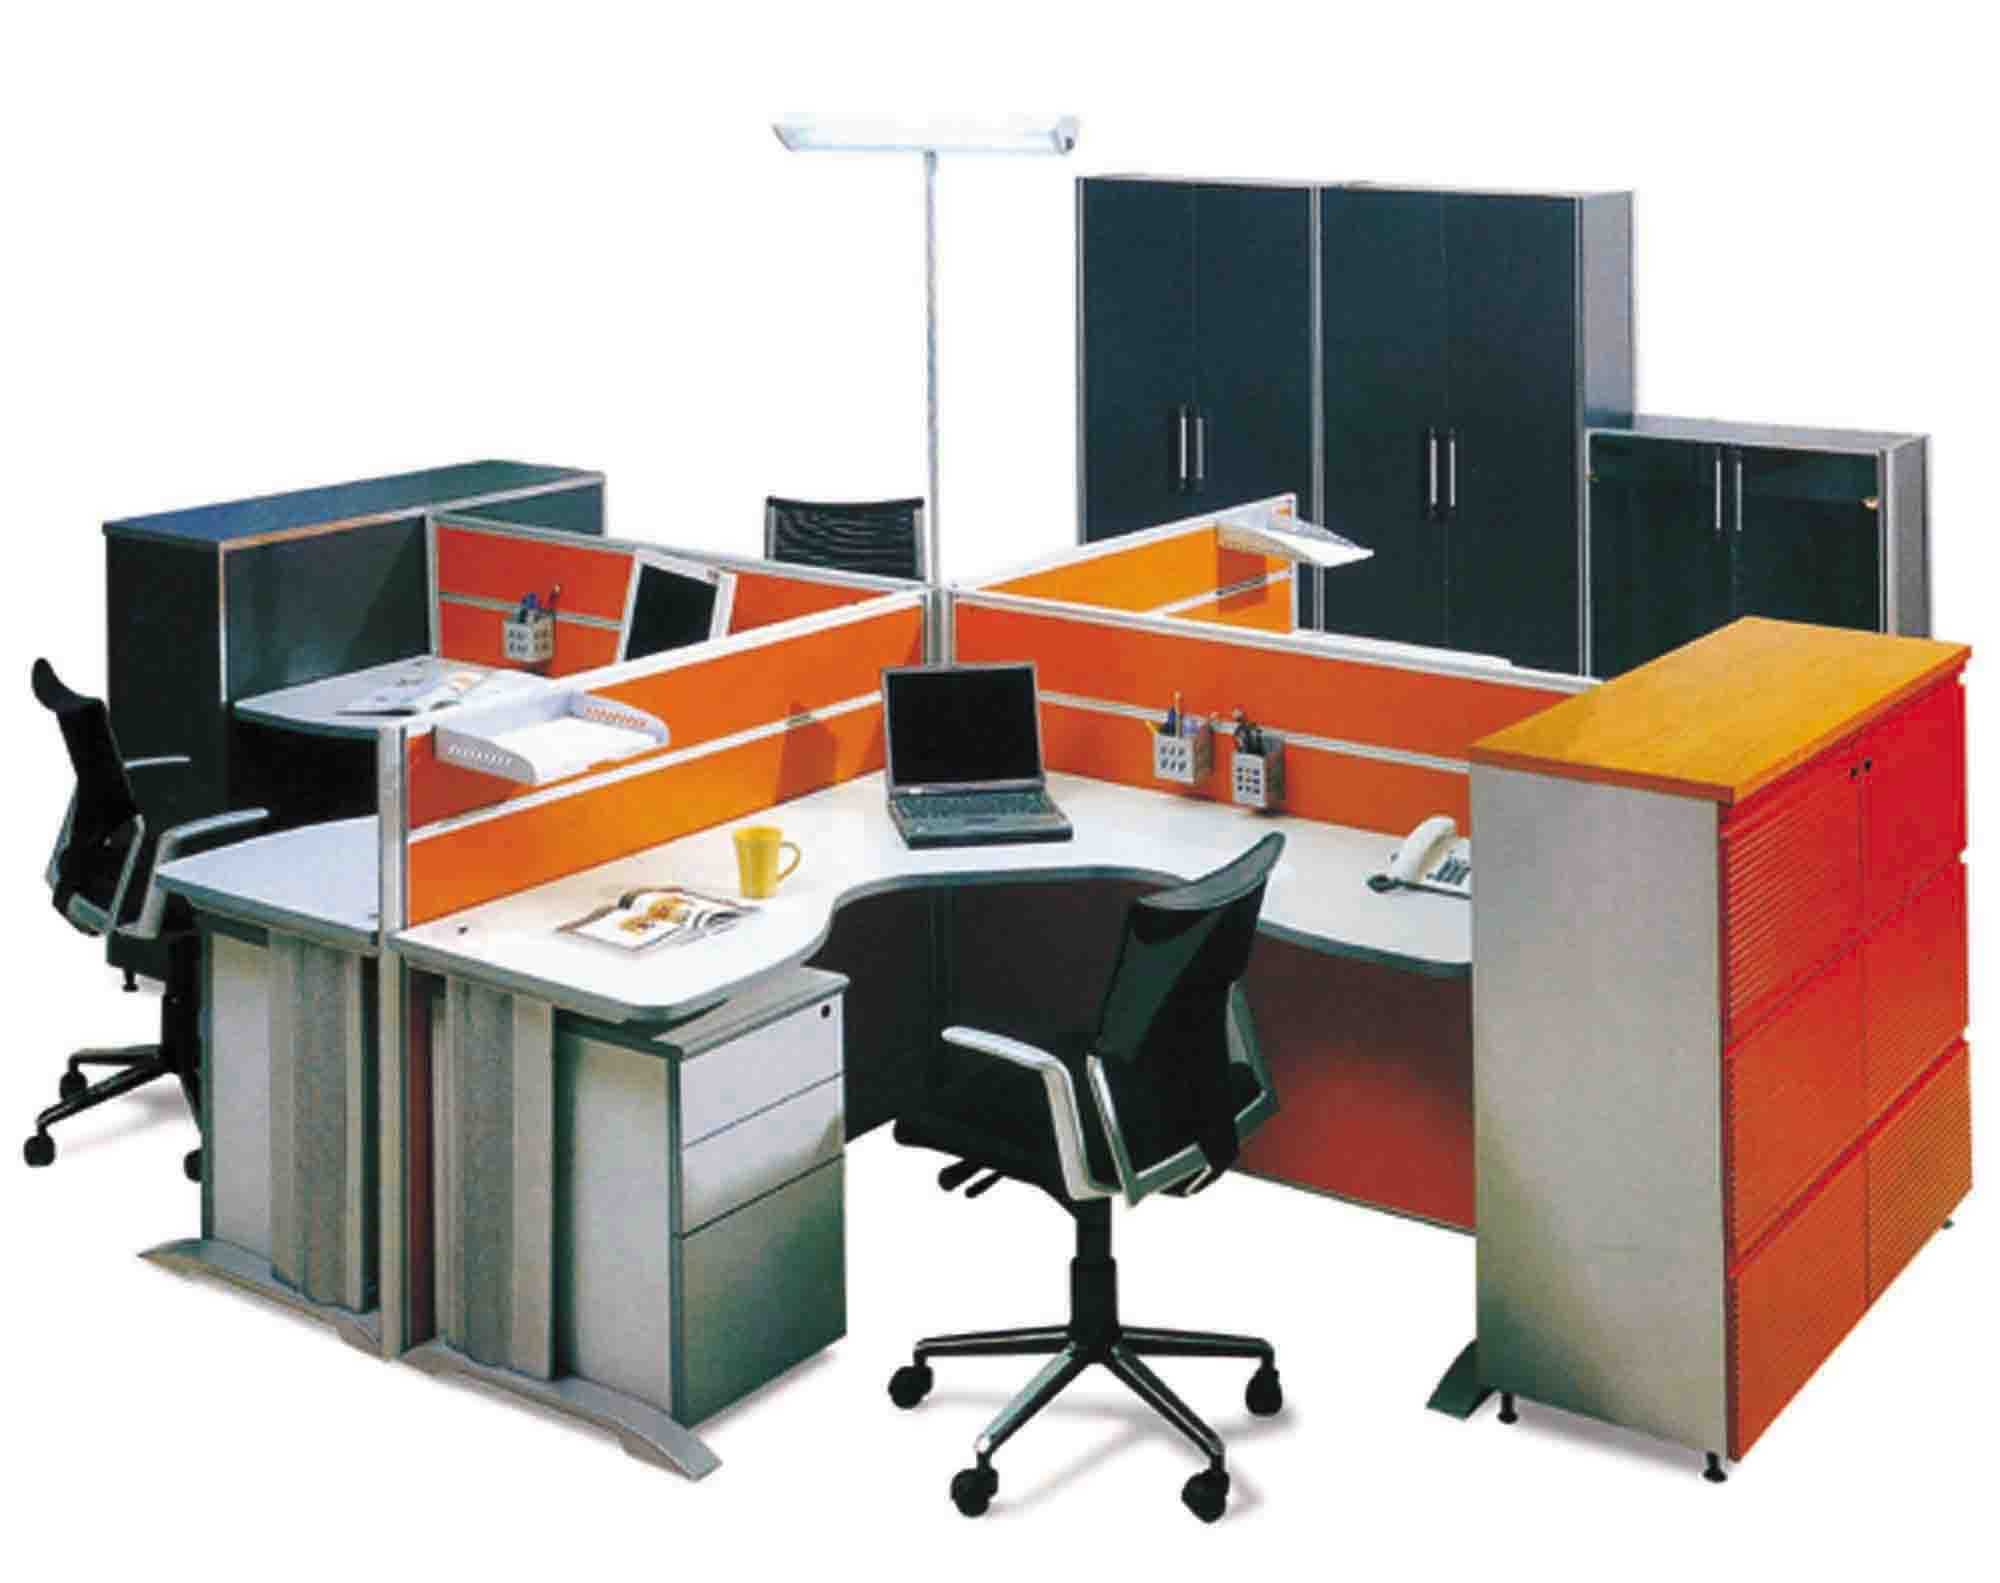 green office supplies and equipment